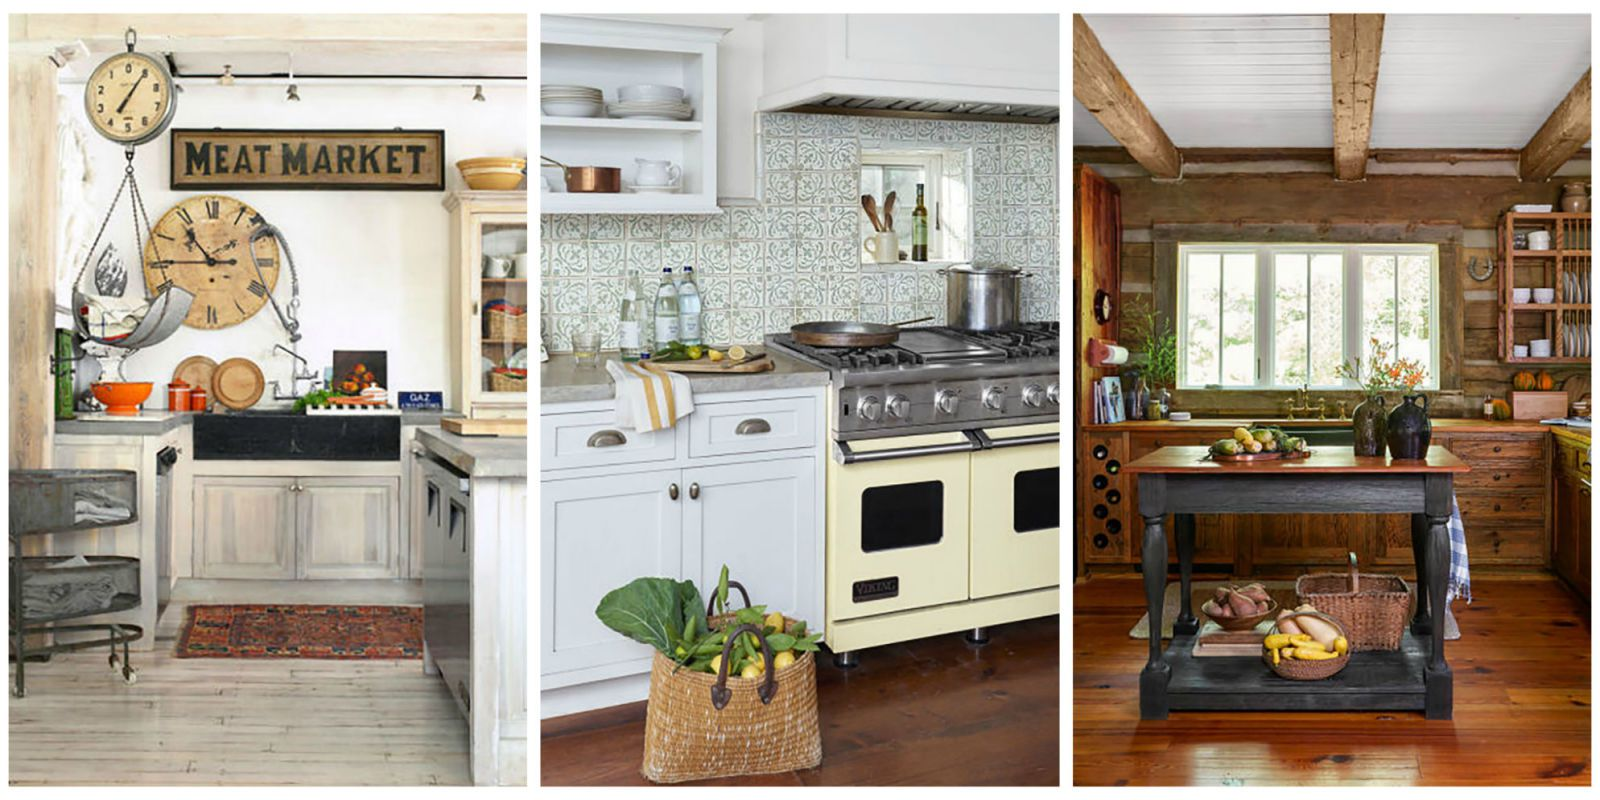 Wooden country style kitchens find more ways to add farmhouse styleto every room of the house; plus, NPFSMAL